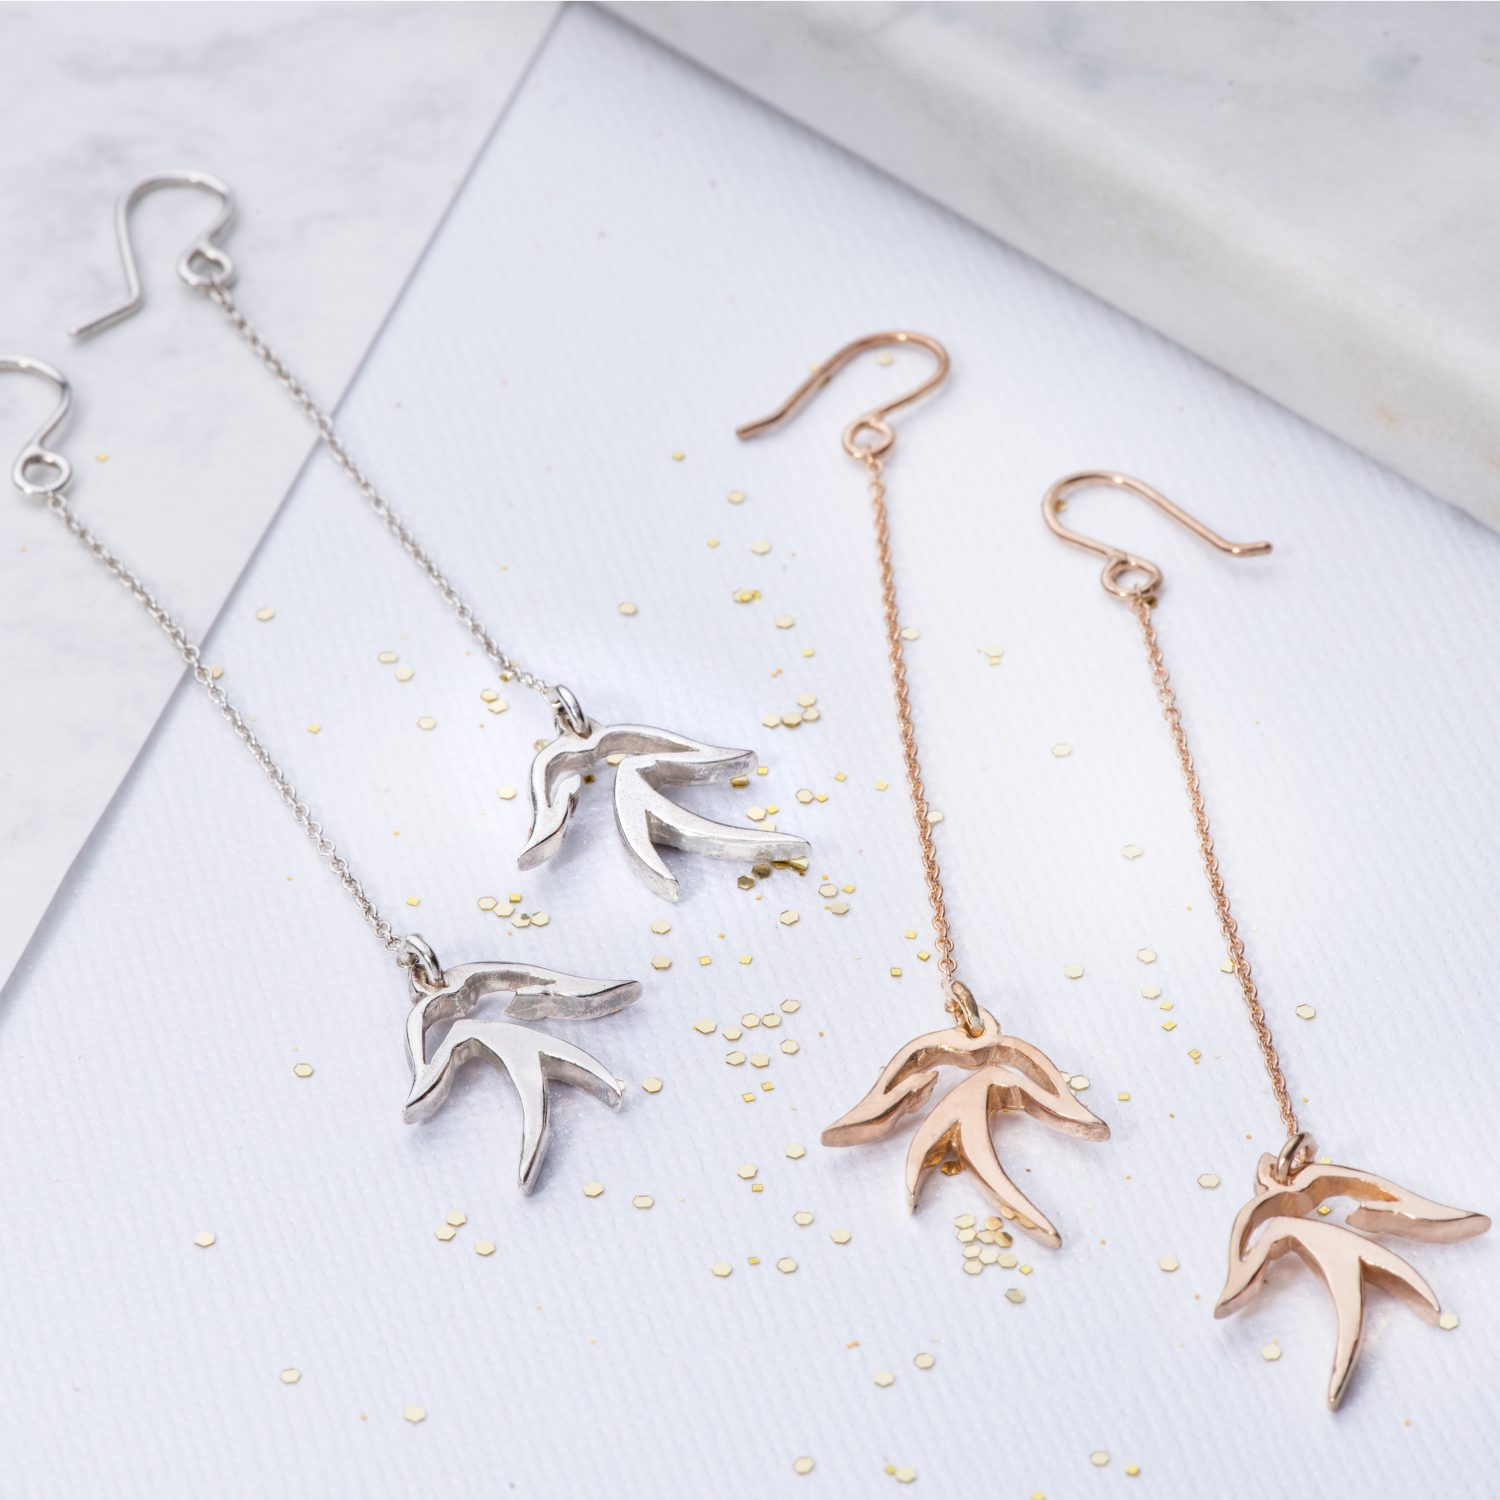 Drop bird earrings in silver and rose gold